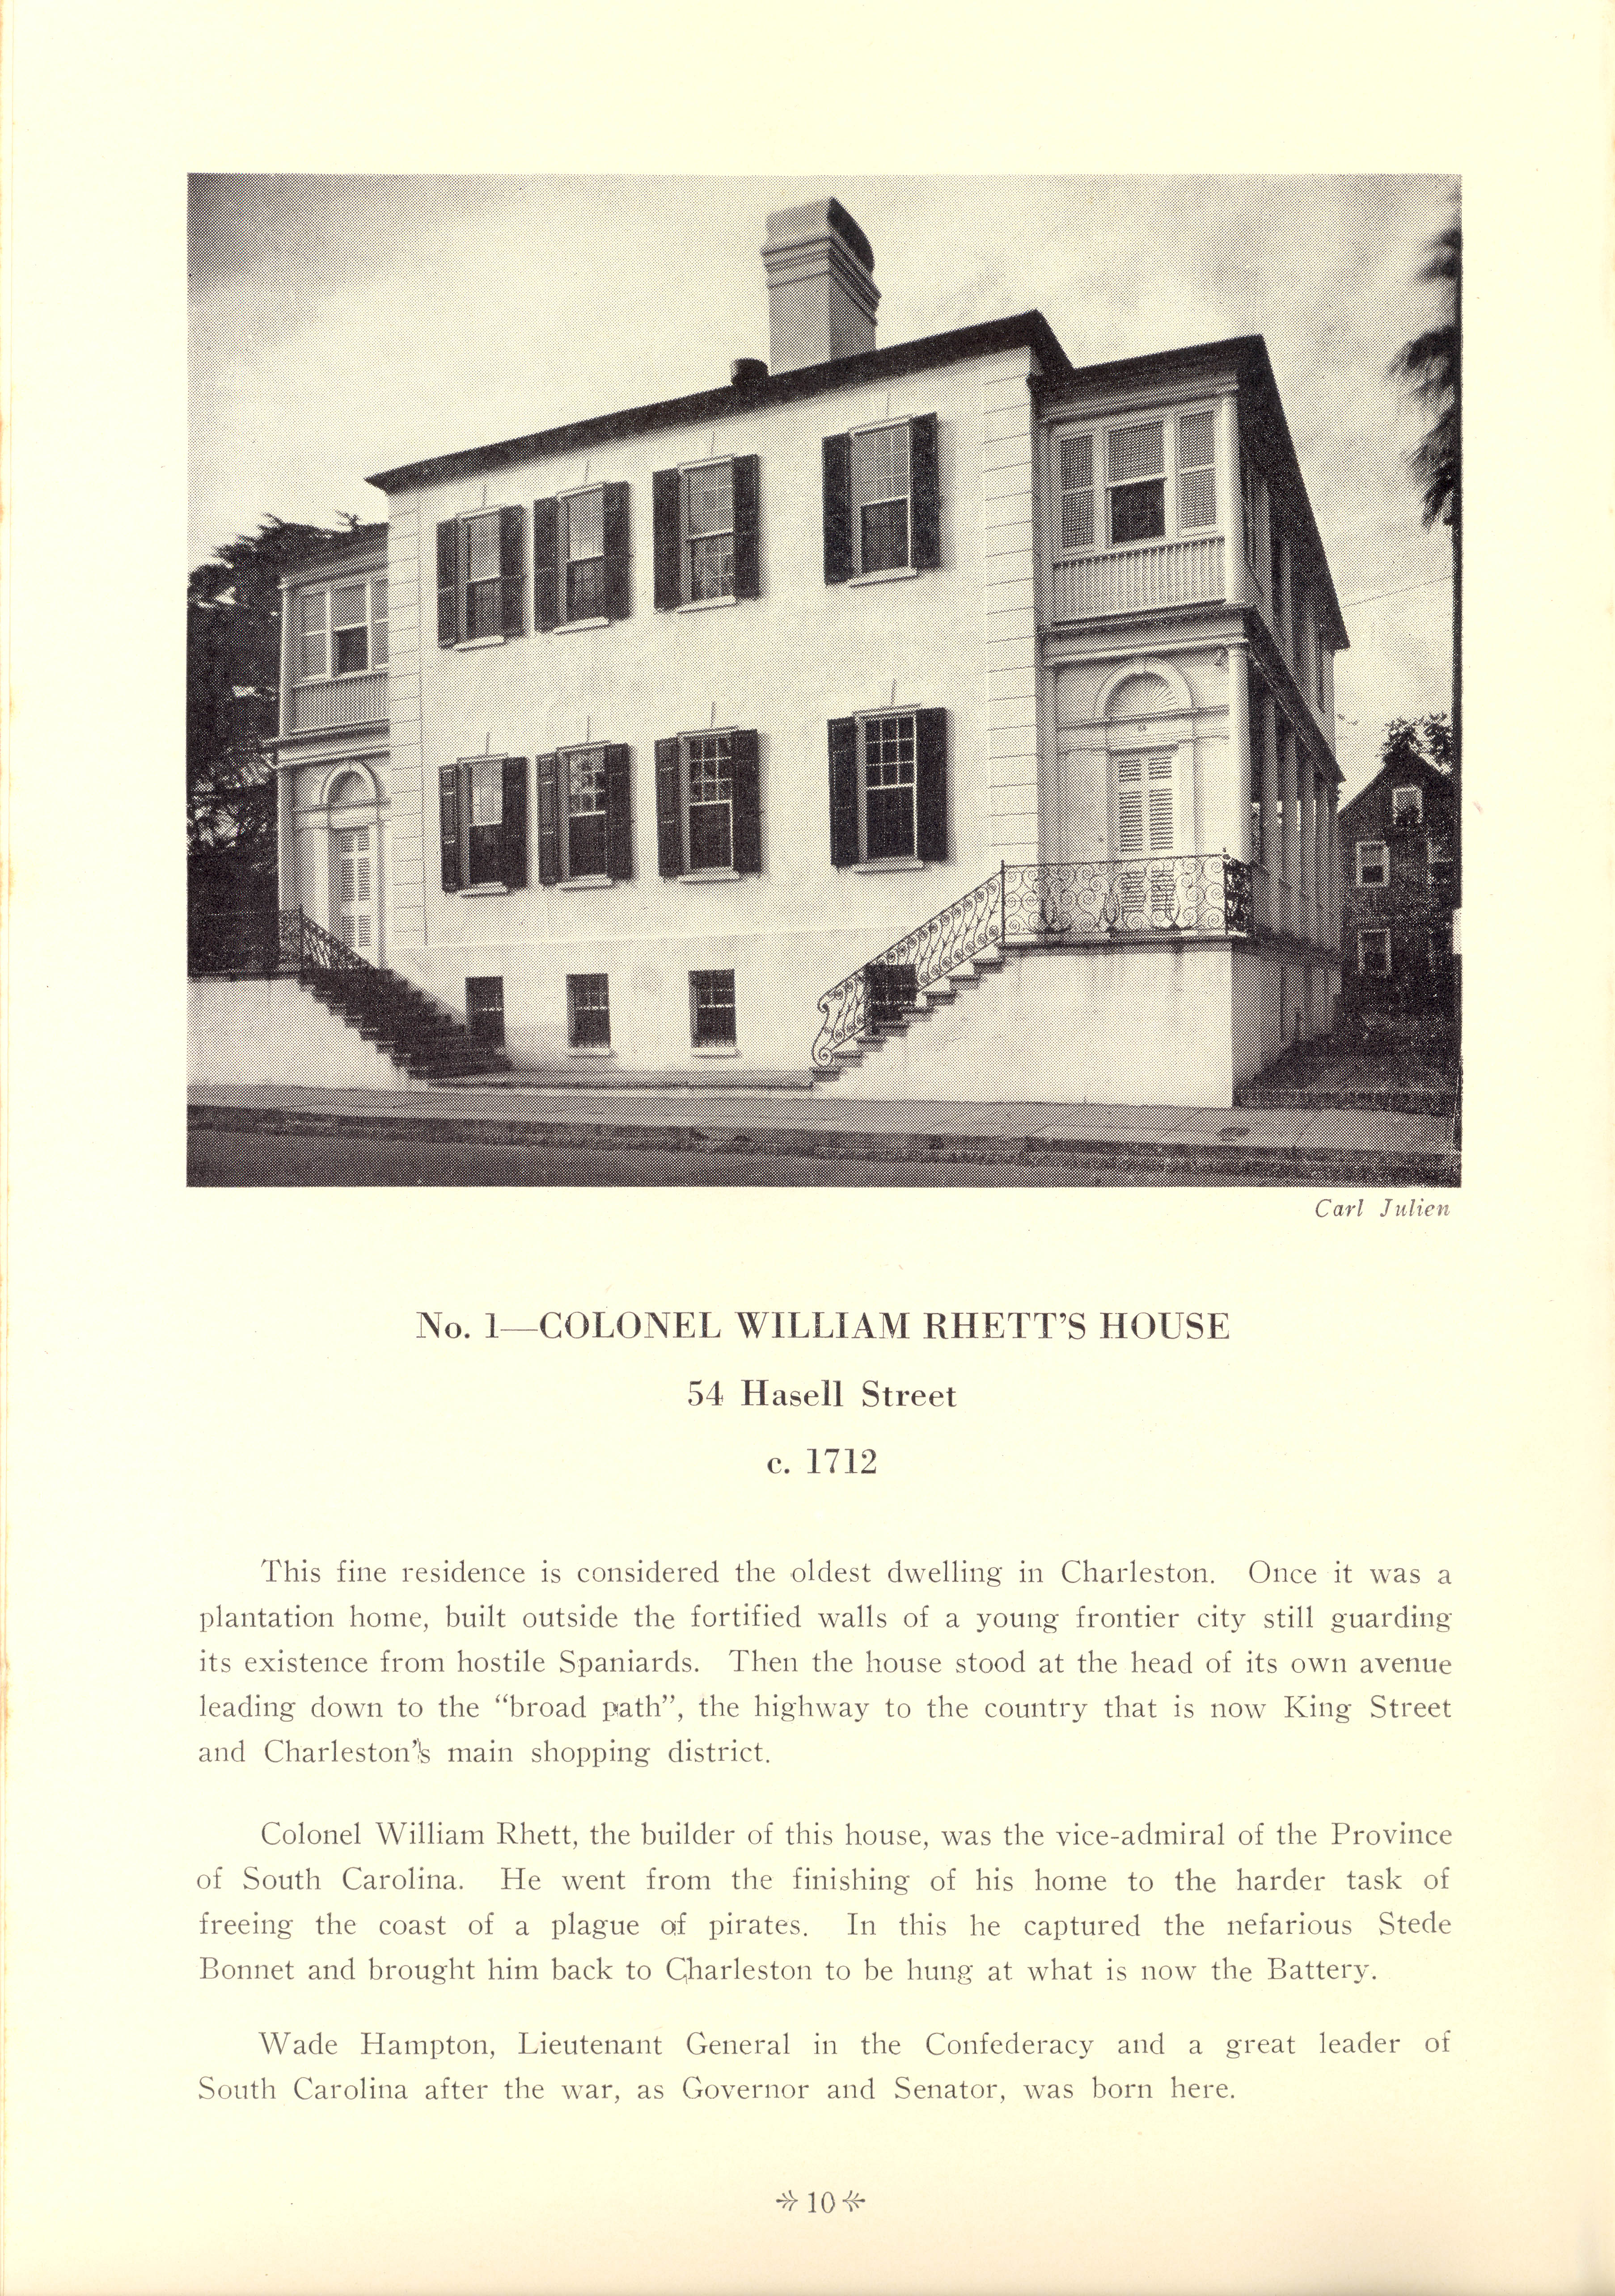 Page 10:  No. 1 - Colonel William Rhett's House, 54 Hasell Street, c. 1712